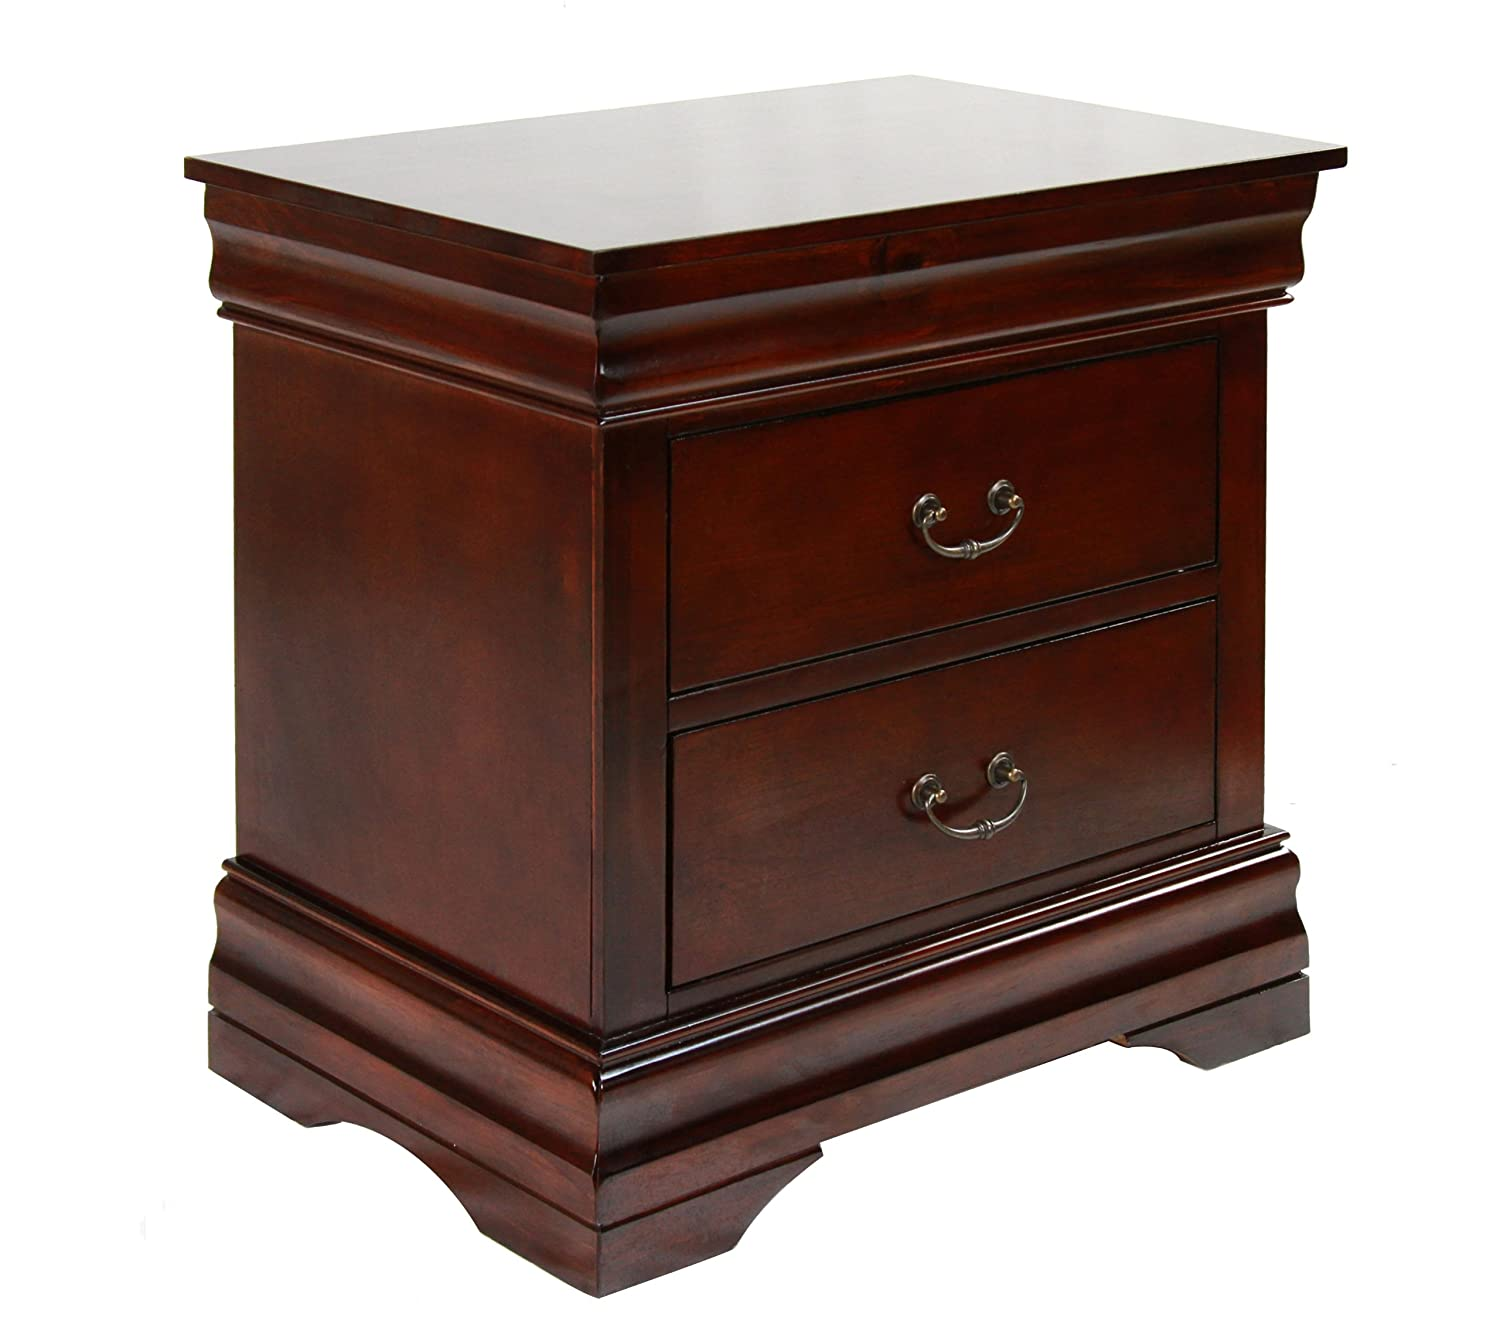 Cherry Finish Nightstands Add Style And Class To Your